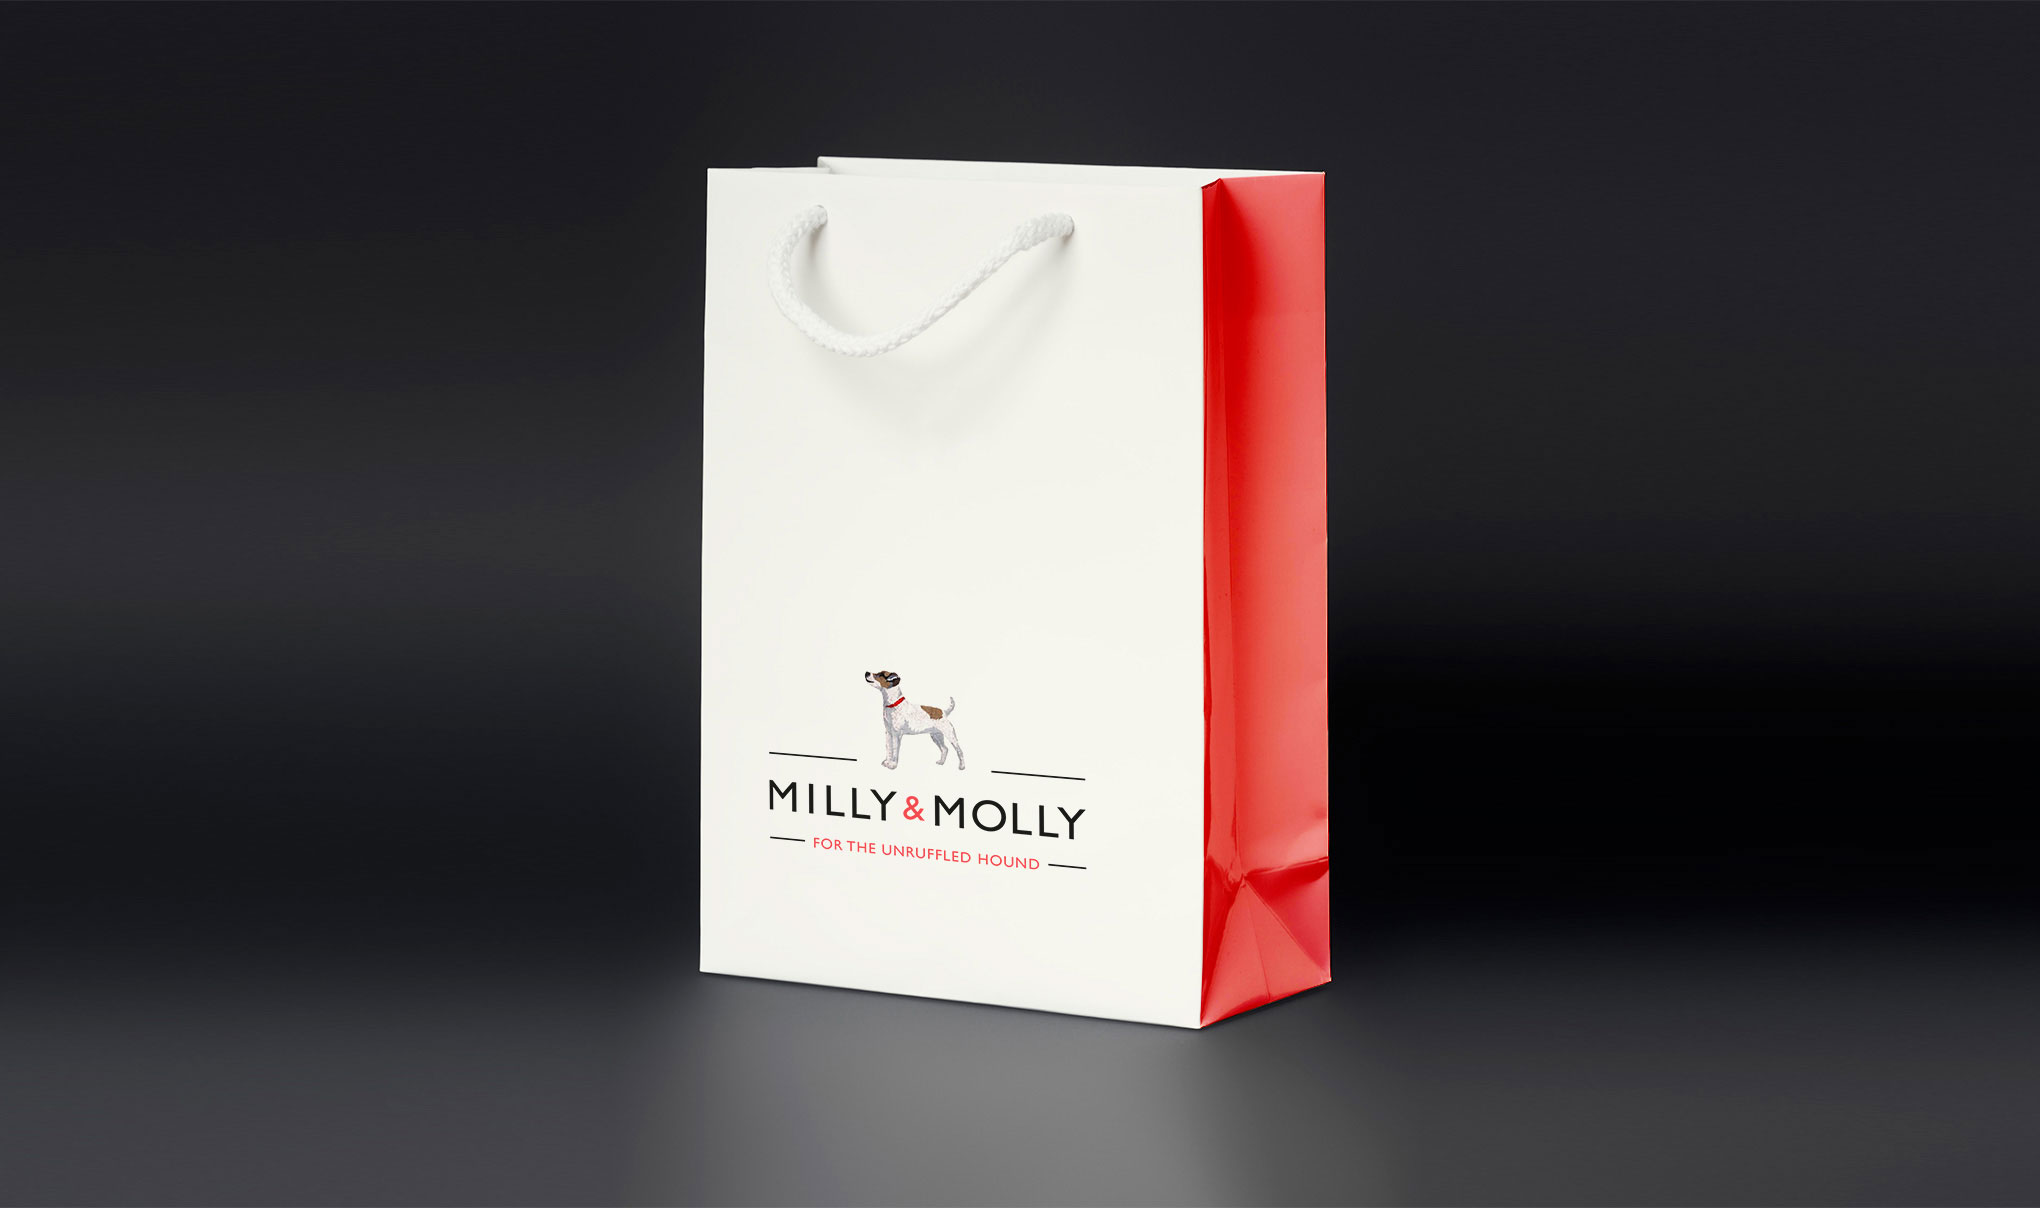 Pet packaging design. Image shows brand logo on paper bag with rope handle. Identity and packaging designed for the brand MILLY & MOLLY by design agency - Flipflop Design Ltd.